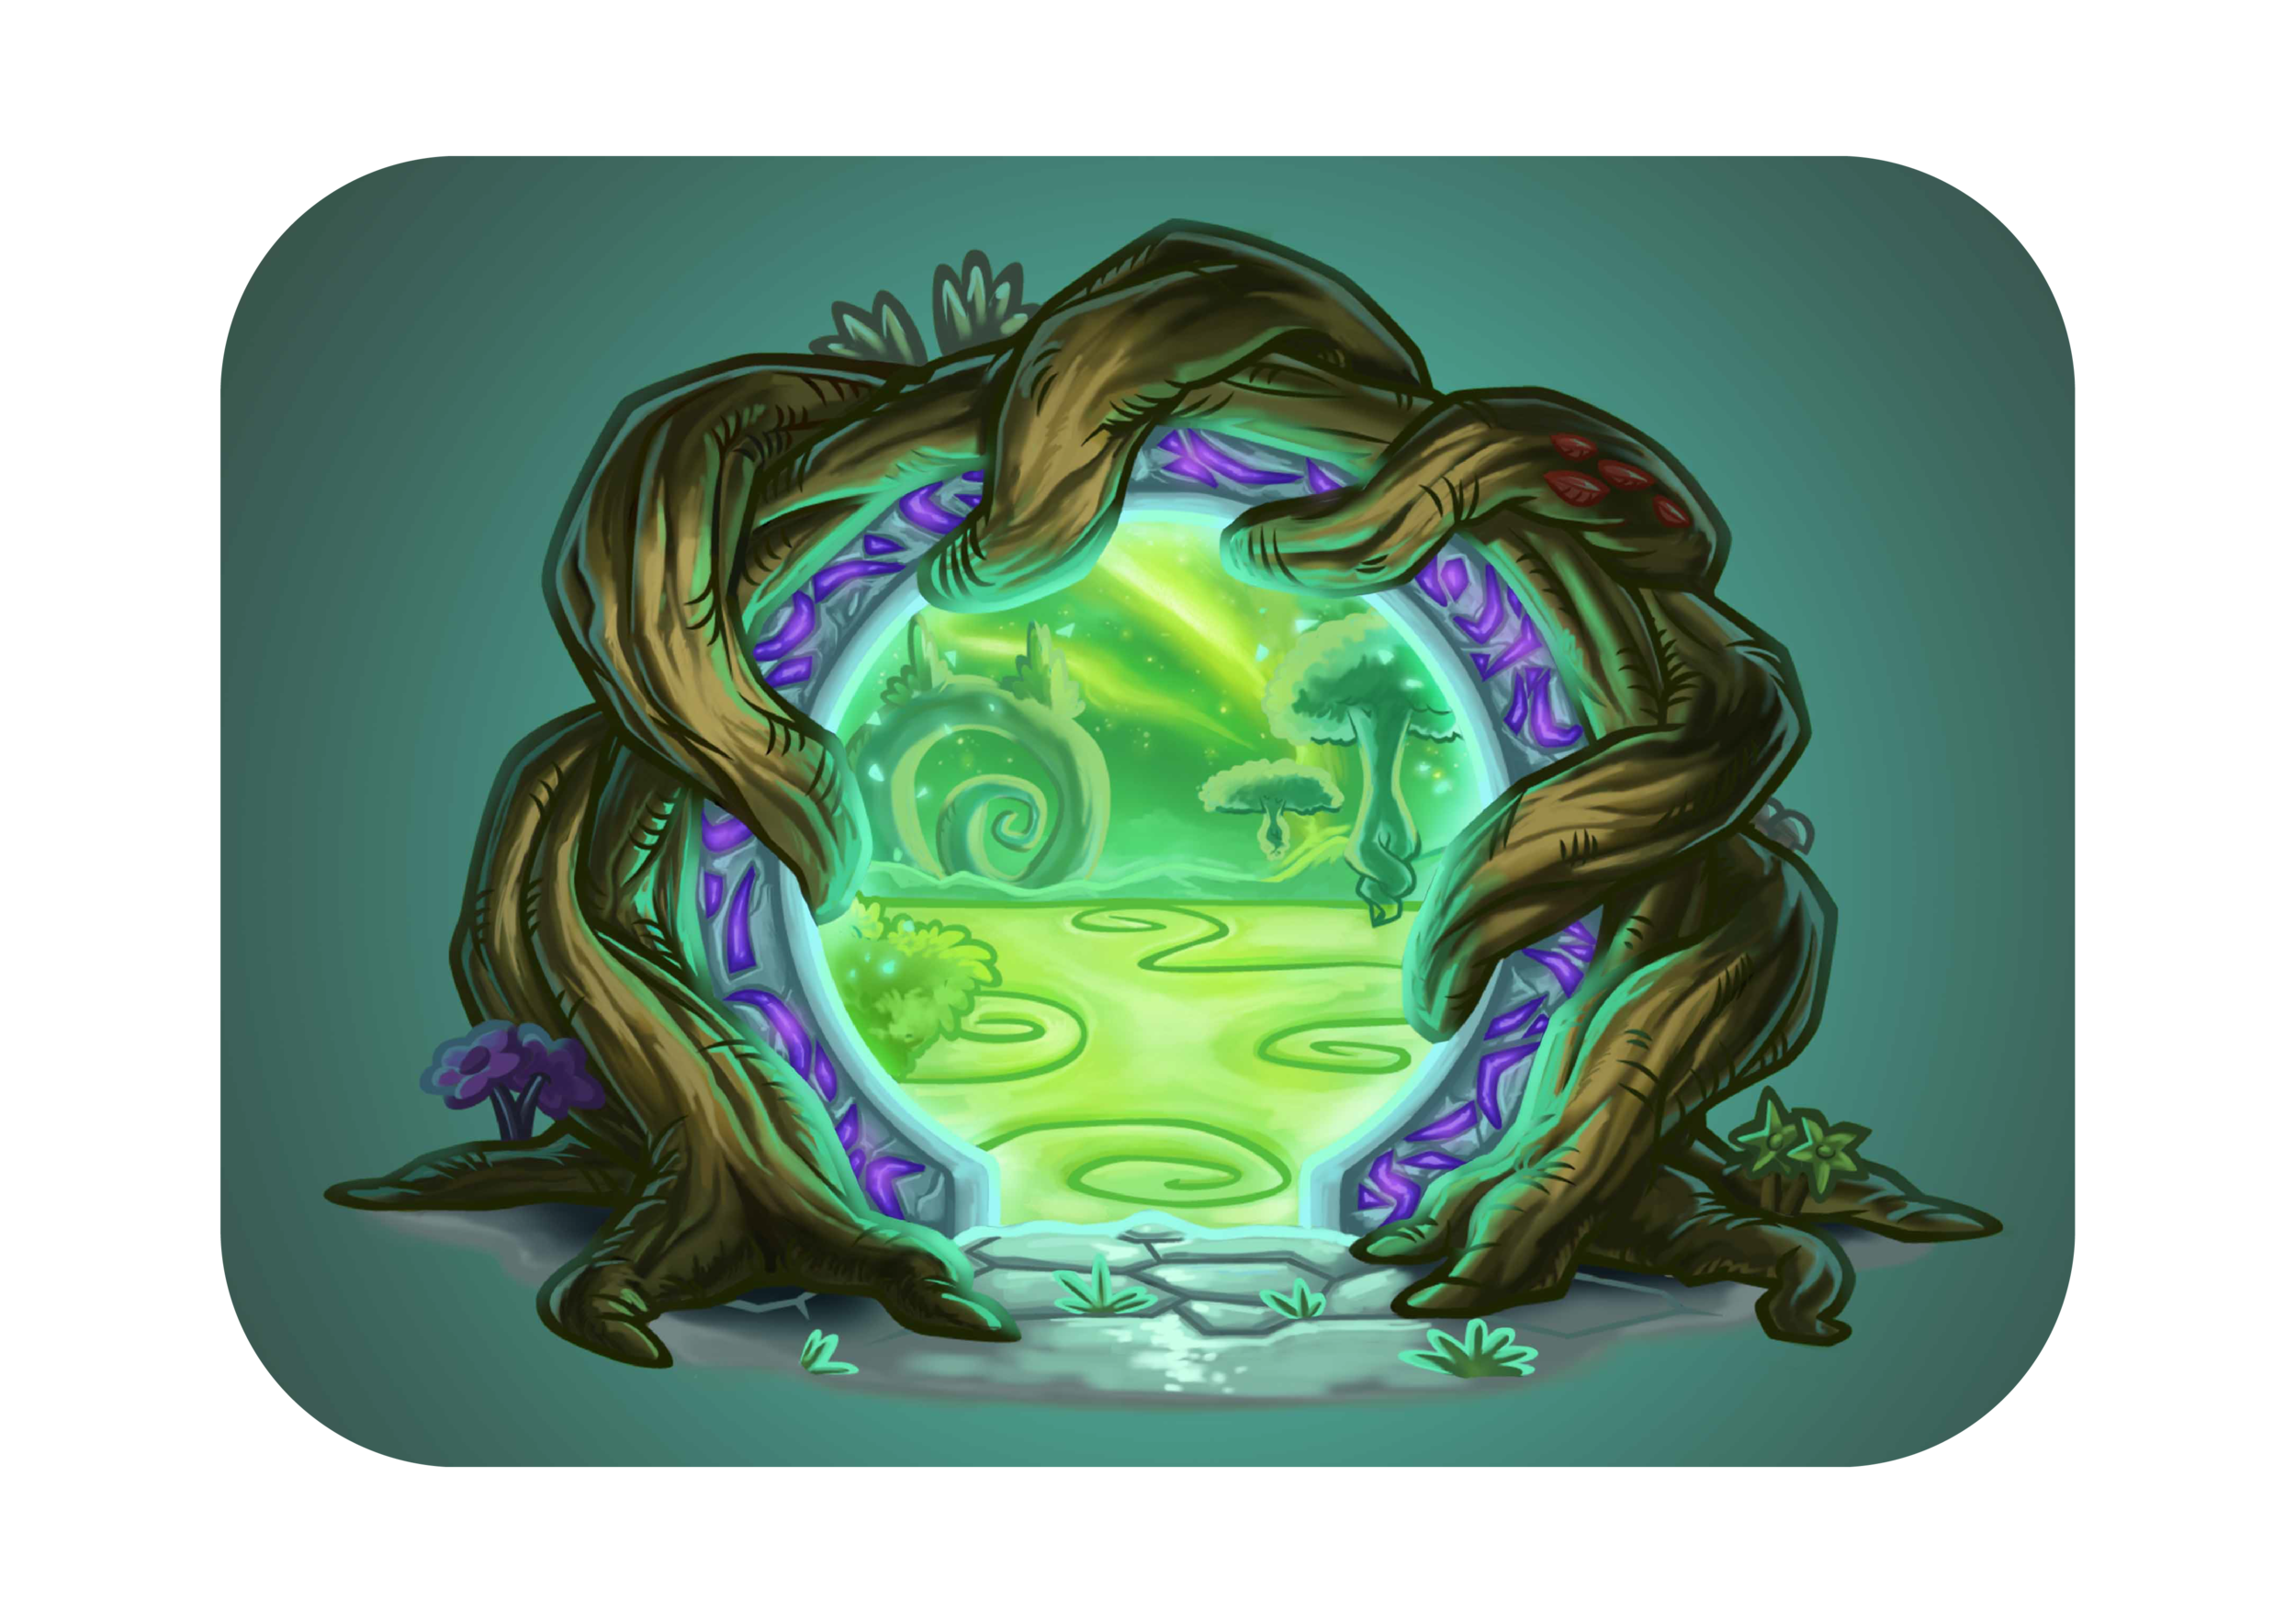 The Emerald Dream Portal by Toonytoons on Fiverr.